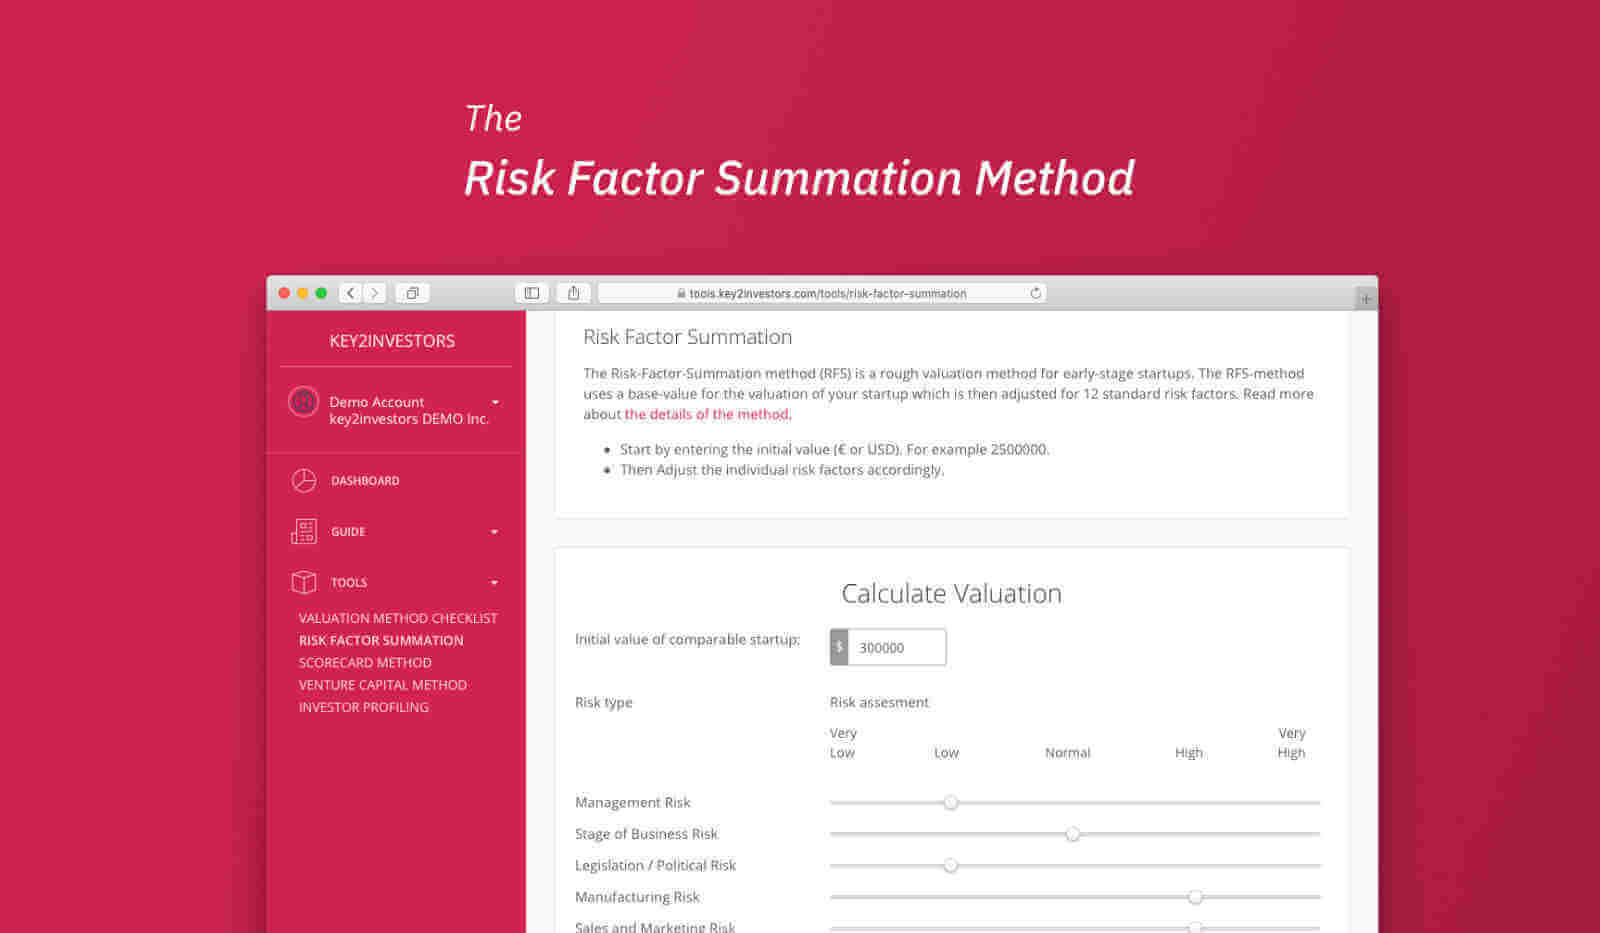 RFS Method Calculation Tool